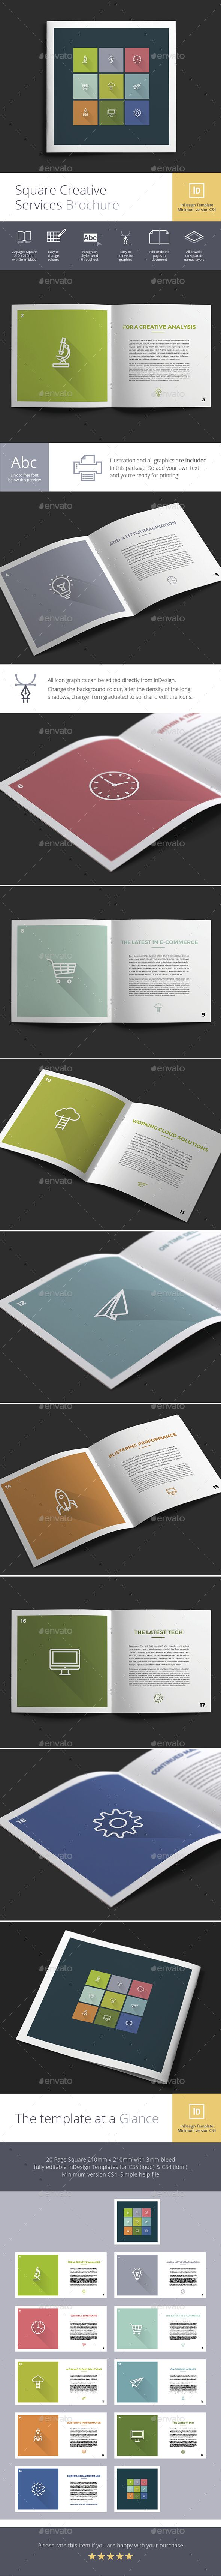 Square Creative Services Brochure Design Idea   Brochure Template     Square Creative Services Brochure Design Idea   Brochure Template InDesign  INDD  Download here  http